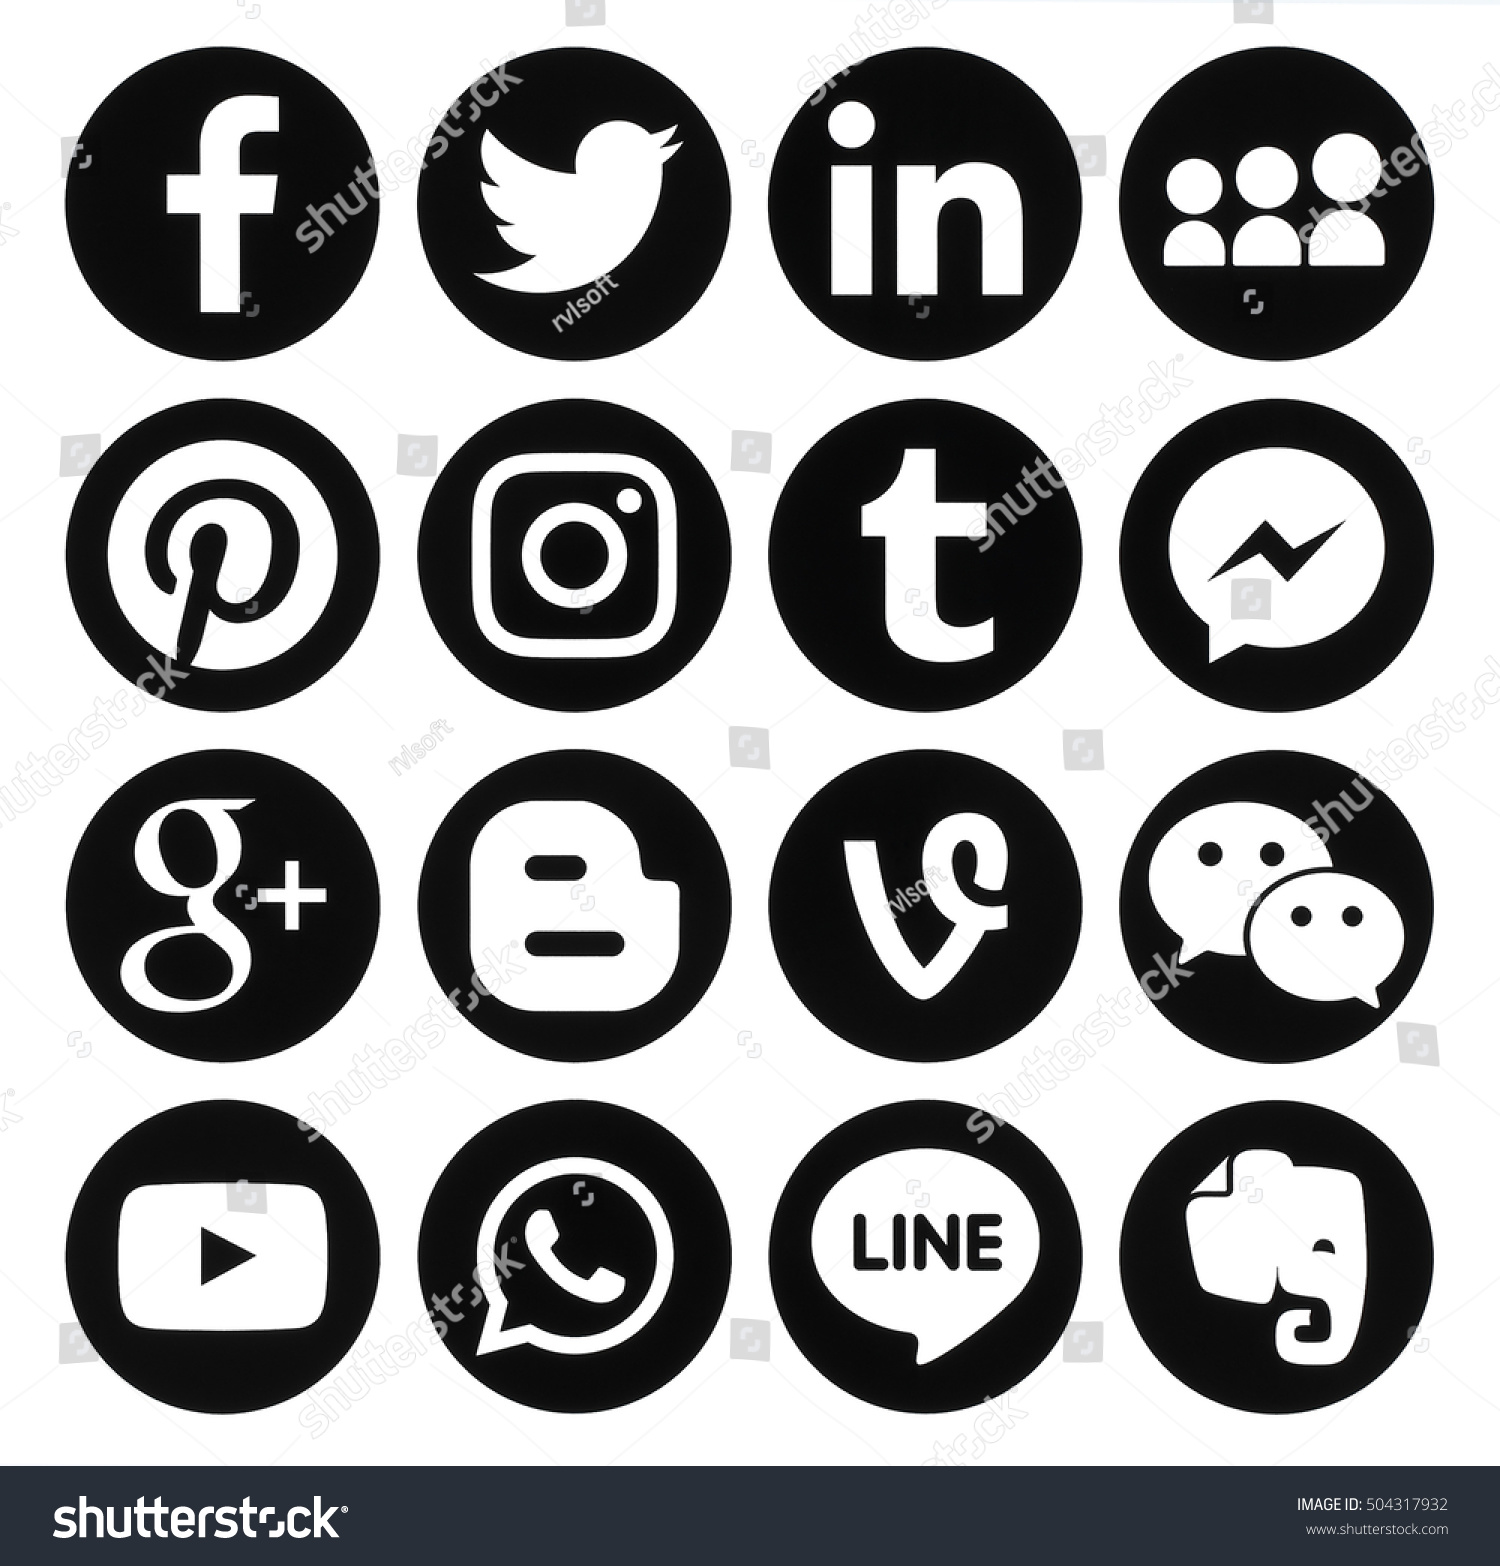 Kiev, Ukraine - October 25, 2016: Collection of popular black round social media icons printed on paper: Facebook, Twitter, Google Plus, Instagram, Pinterest, LinkedIn, Blogger, Tumblr and others